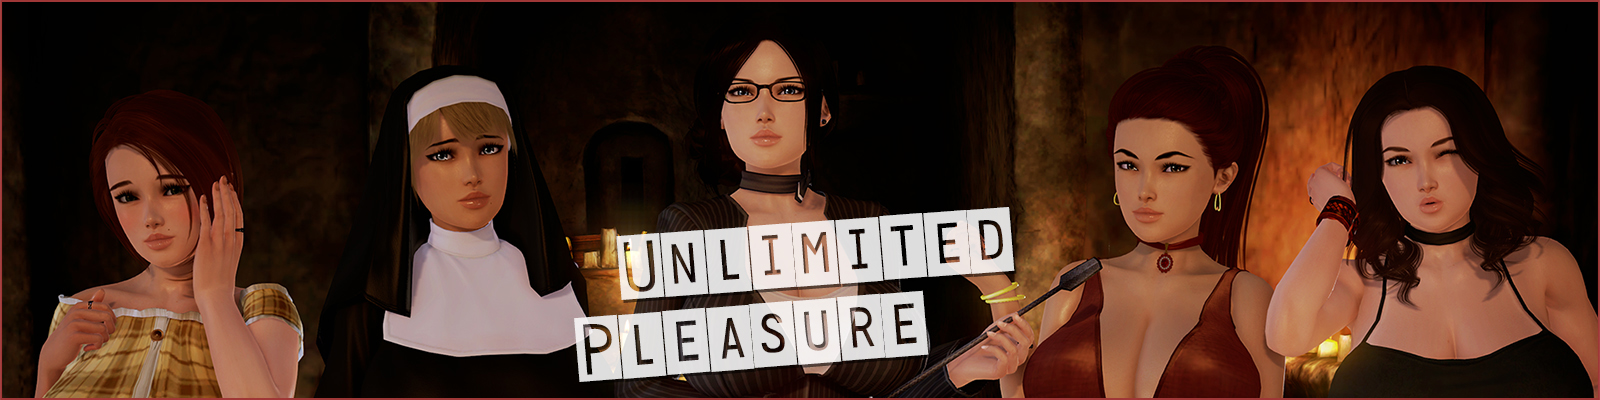 Unlimited Pleasure [Waifston]